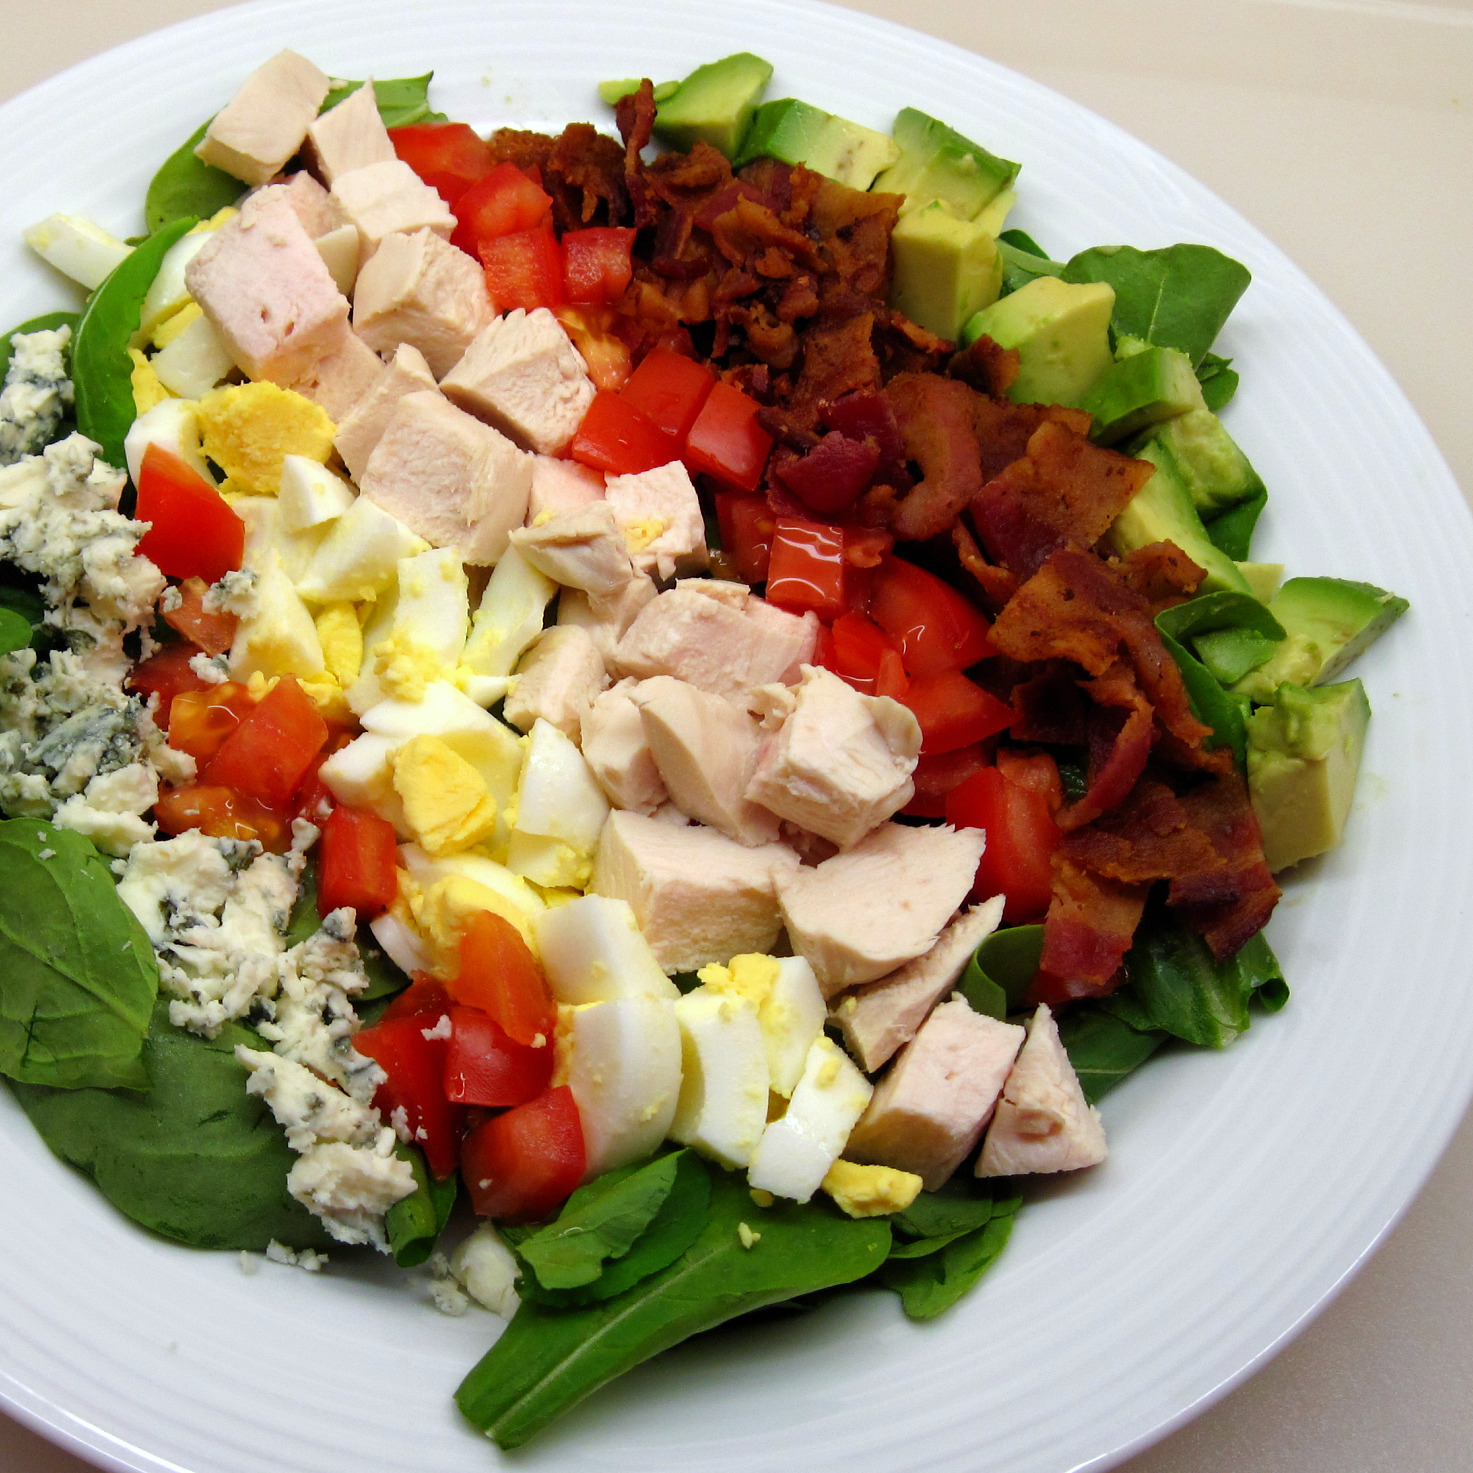 Cobb Salad. Just add bacon, eggs, and chicken. Avocado optional.